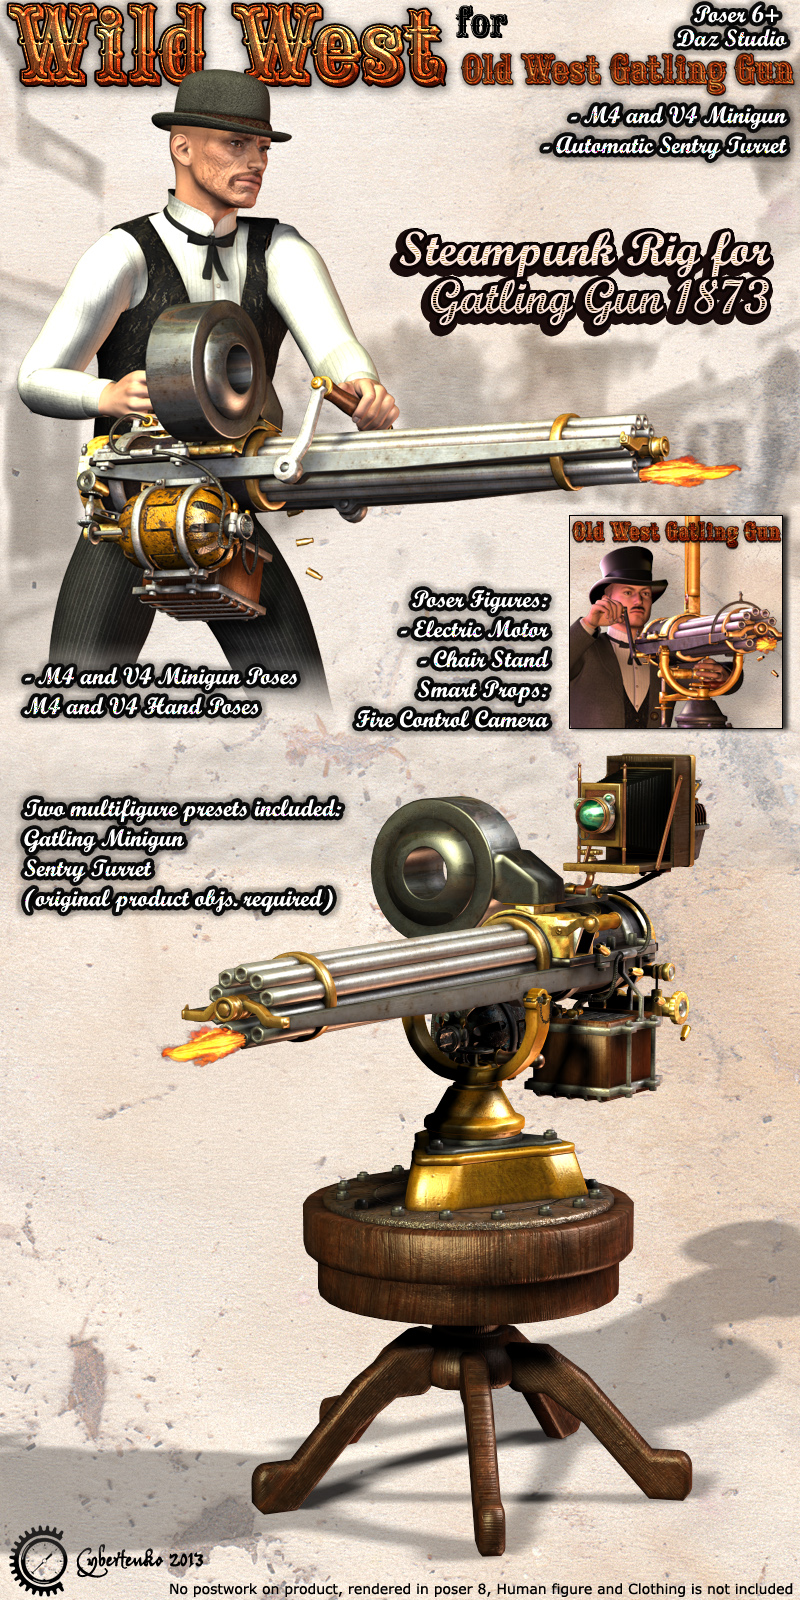 Wild West for Old West Gatling Gun